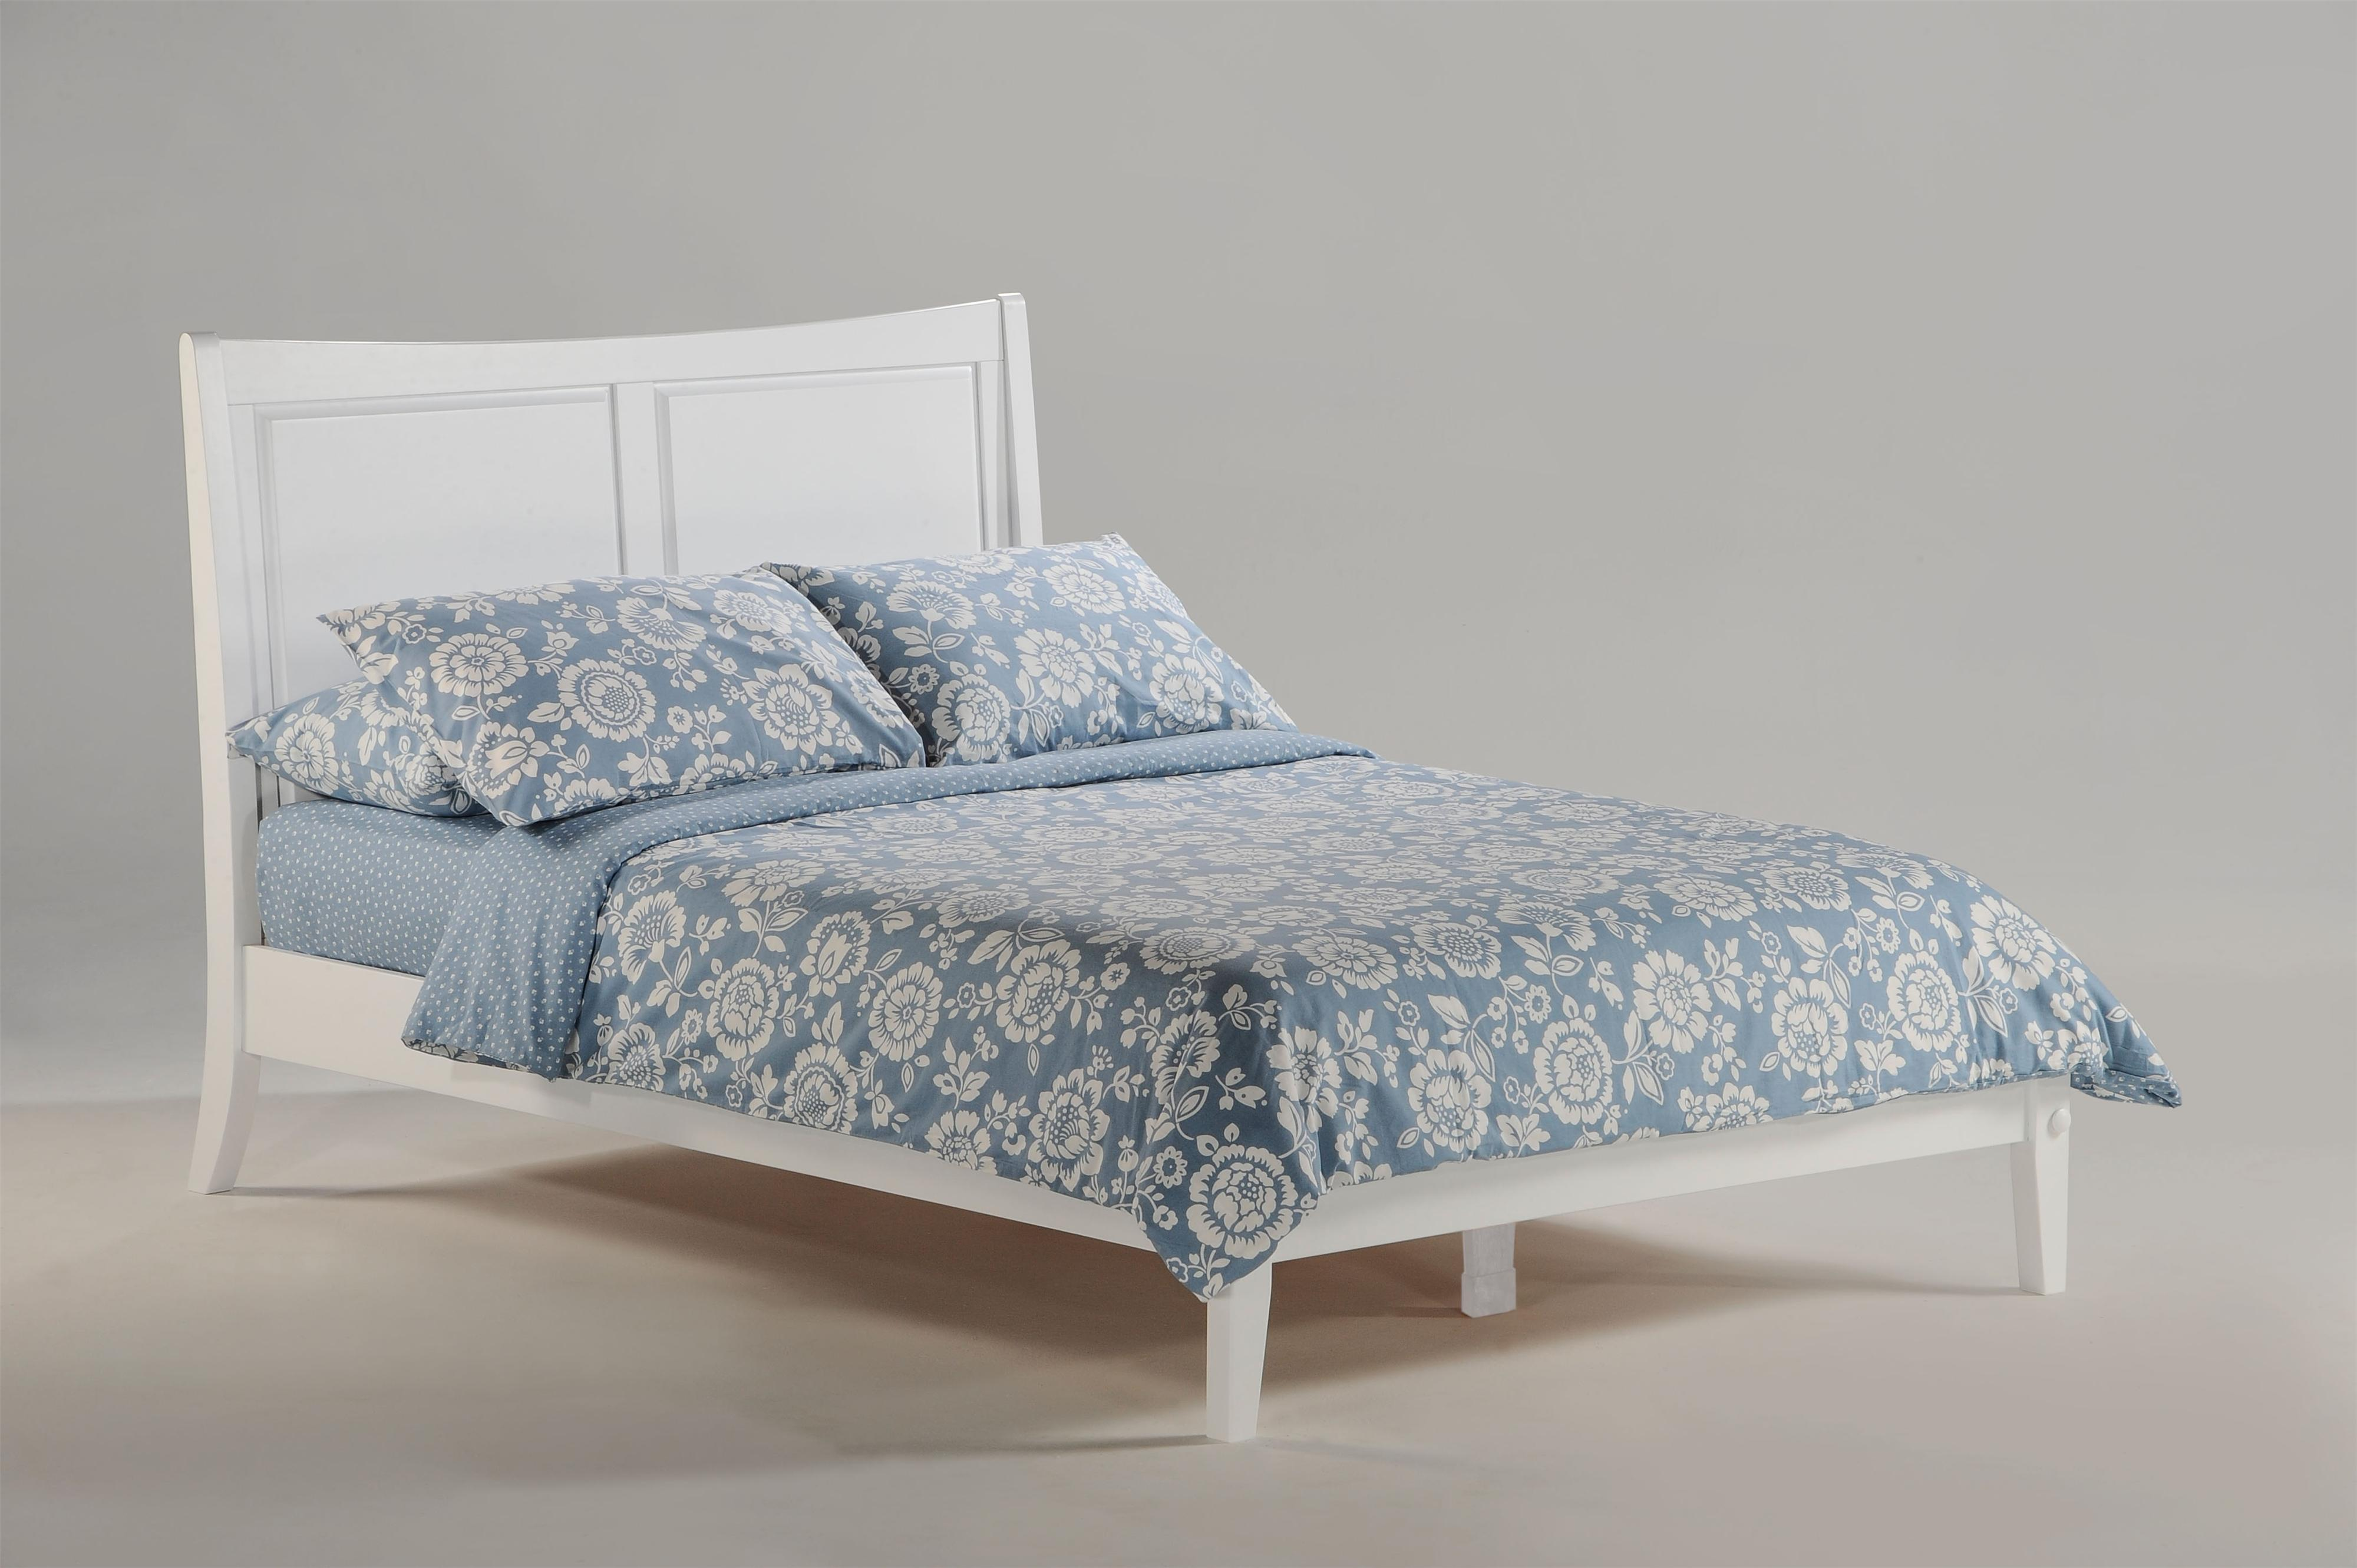 Spice Queen Bed by Night & Day Furniture at Furniture and ApplianceMart